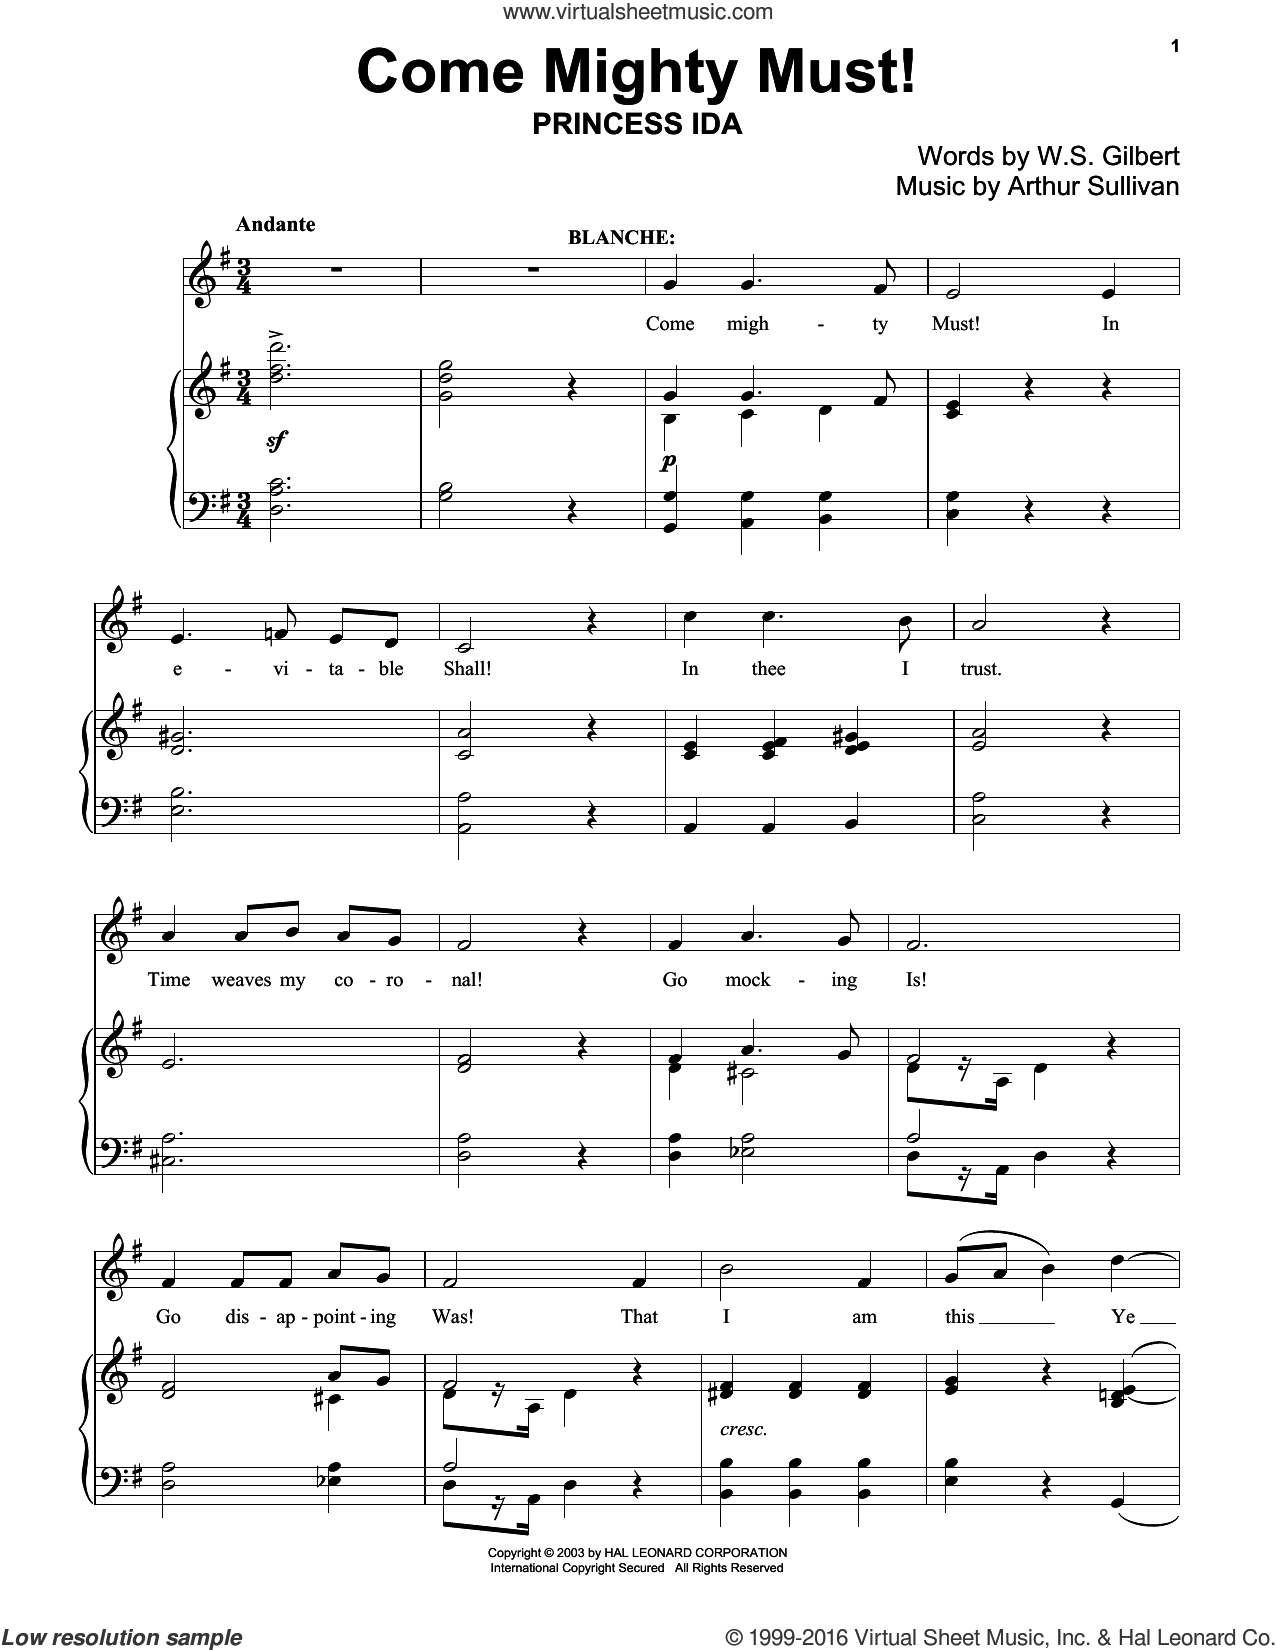 Come Mighty Must! sheet music for piano solo by Gilbert & Sullivan, Richard Walters, Arthur Sullivan and William S. Gilbert, classical score, intermediate skill level